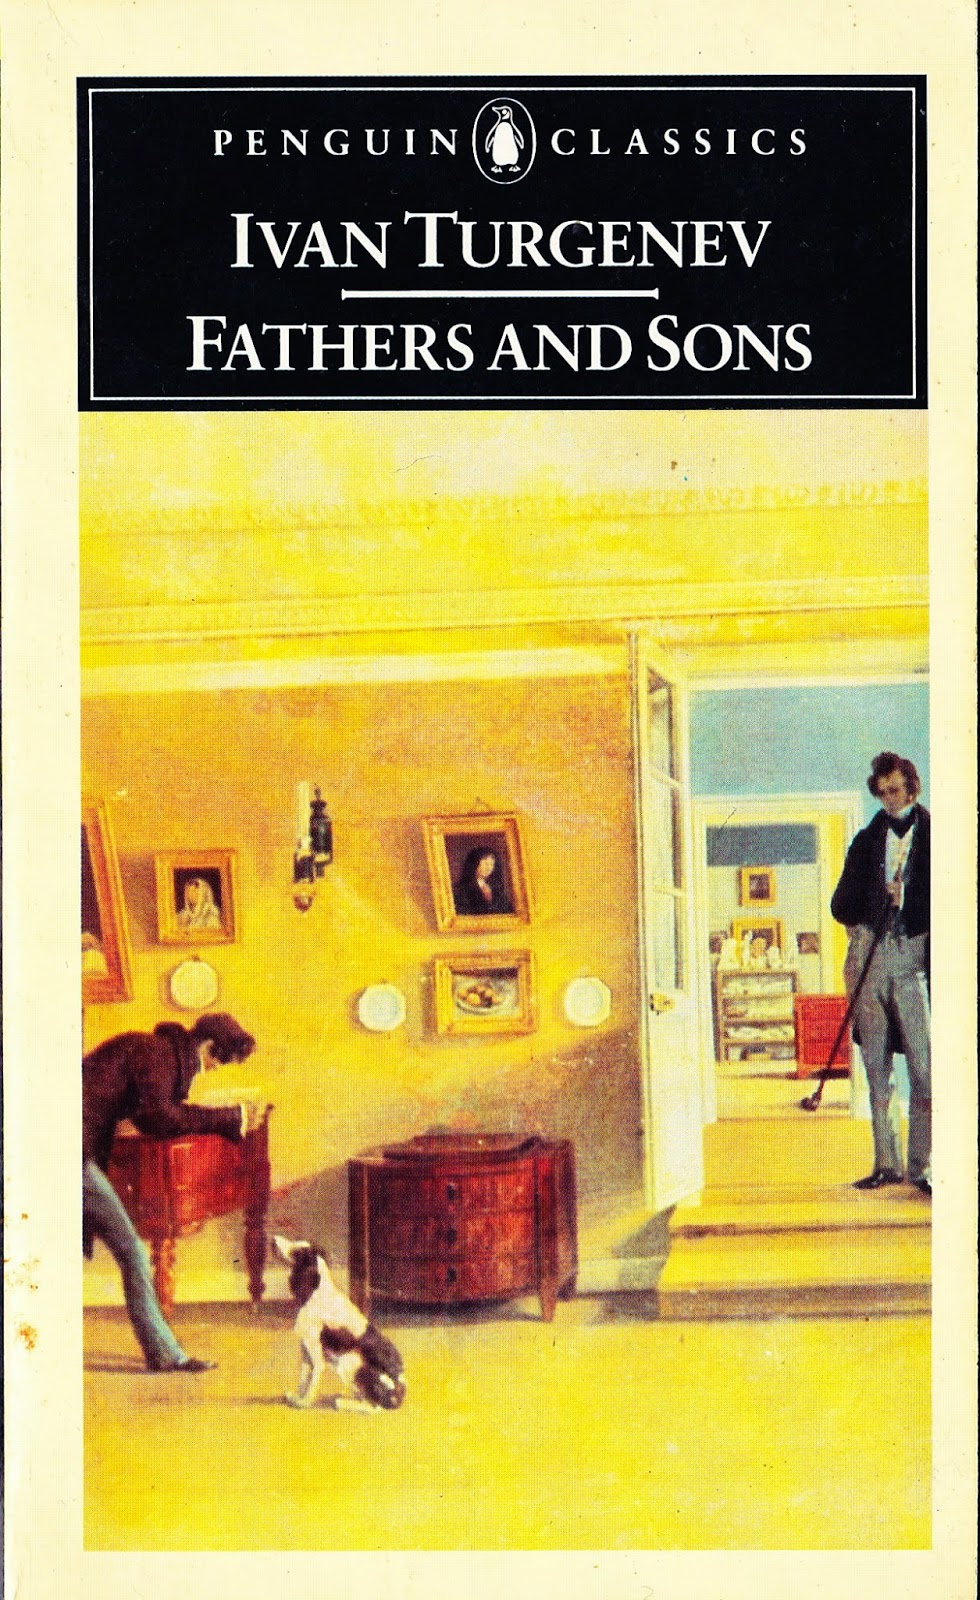 a literary analysis of fathers and sons by ivan turgenev